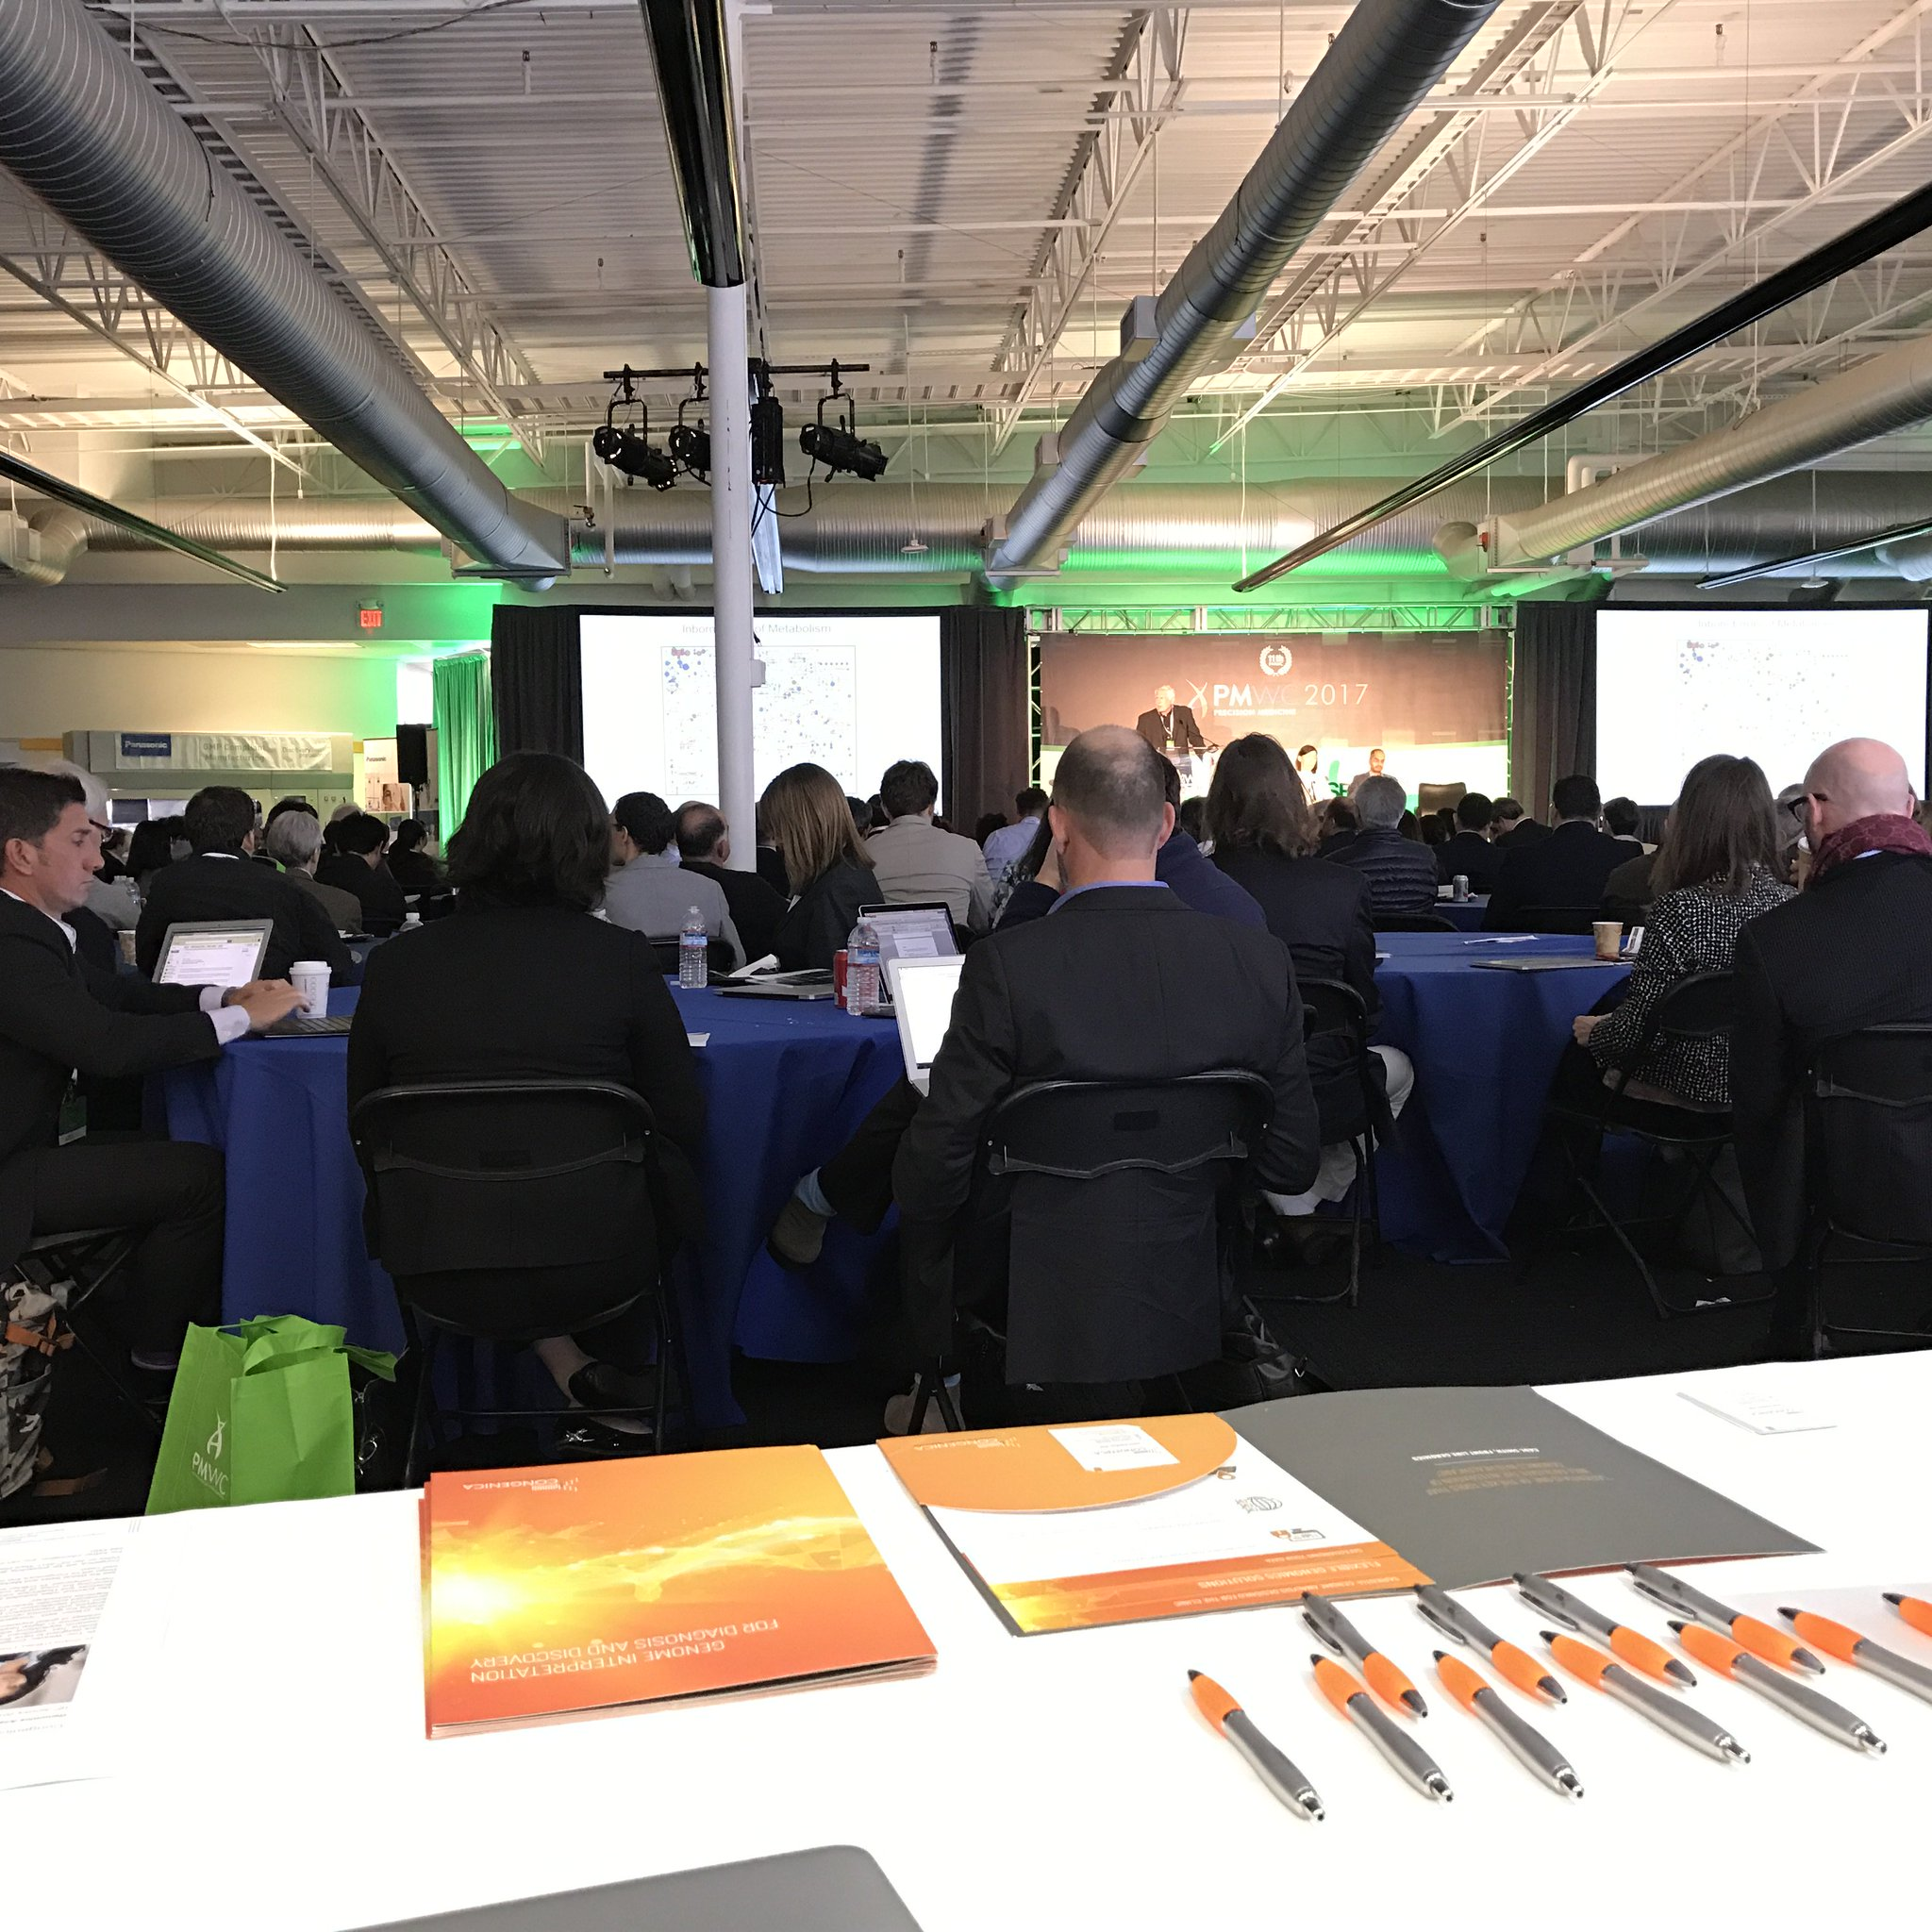 Finally a conference where we can man the booth AND attend the talks at the same time! #PMWC17 @Congenica booth 26 https://t.co/pzShRA6B9a